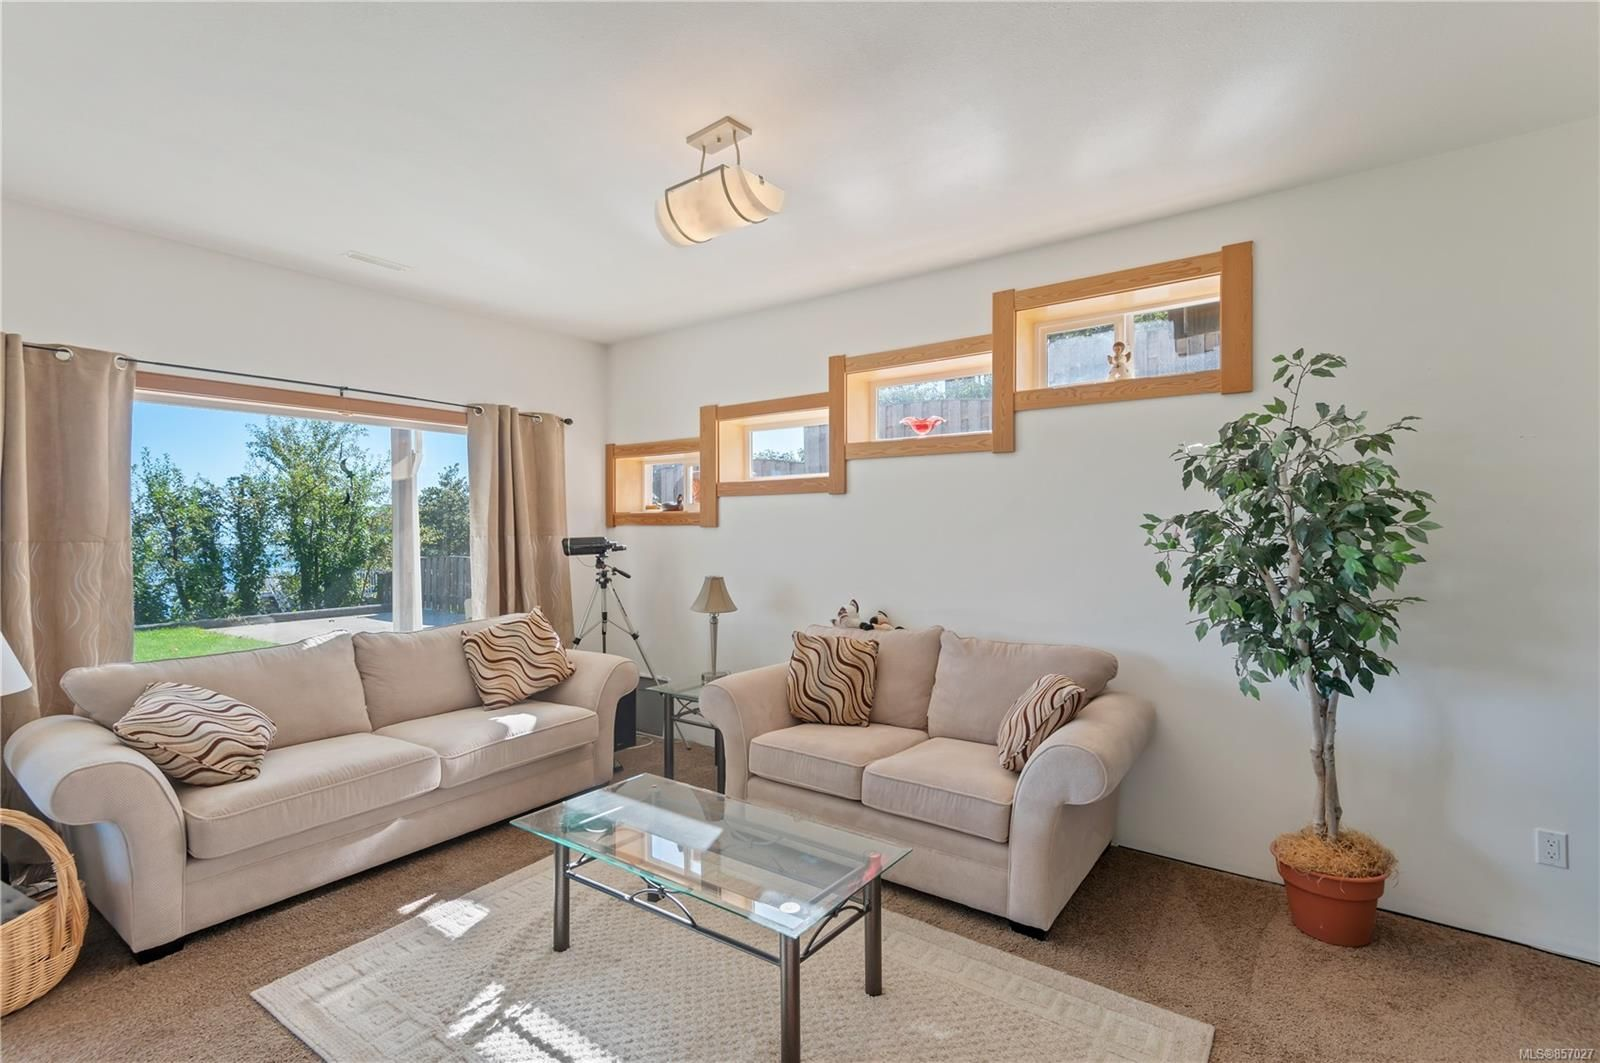 Photo 48: Photos: 253 S Alder St in : CR Campbell River South House for sale (Campbell River)  : MLS®# 857027